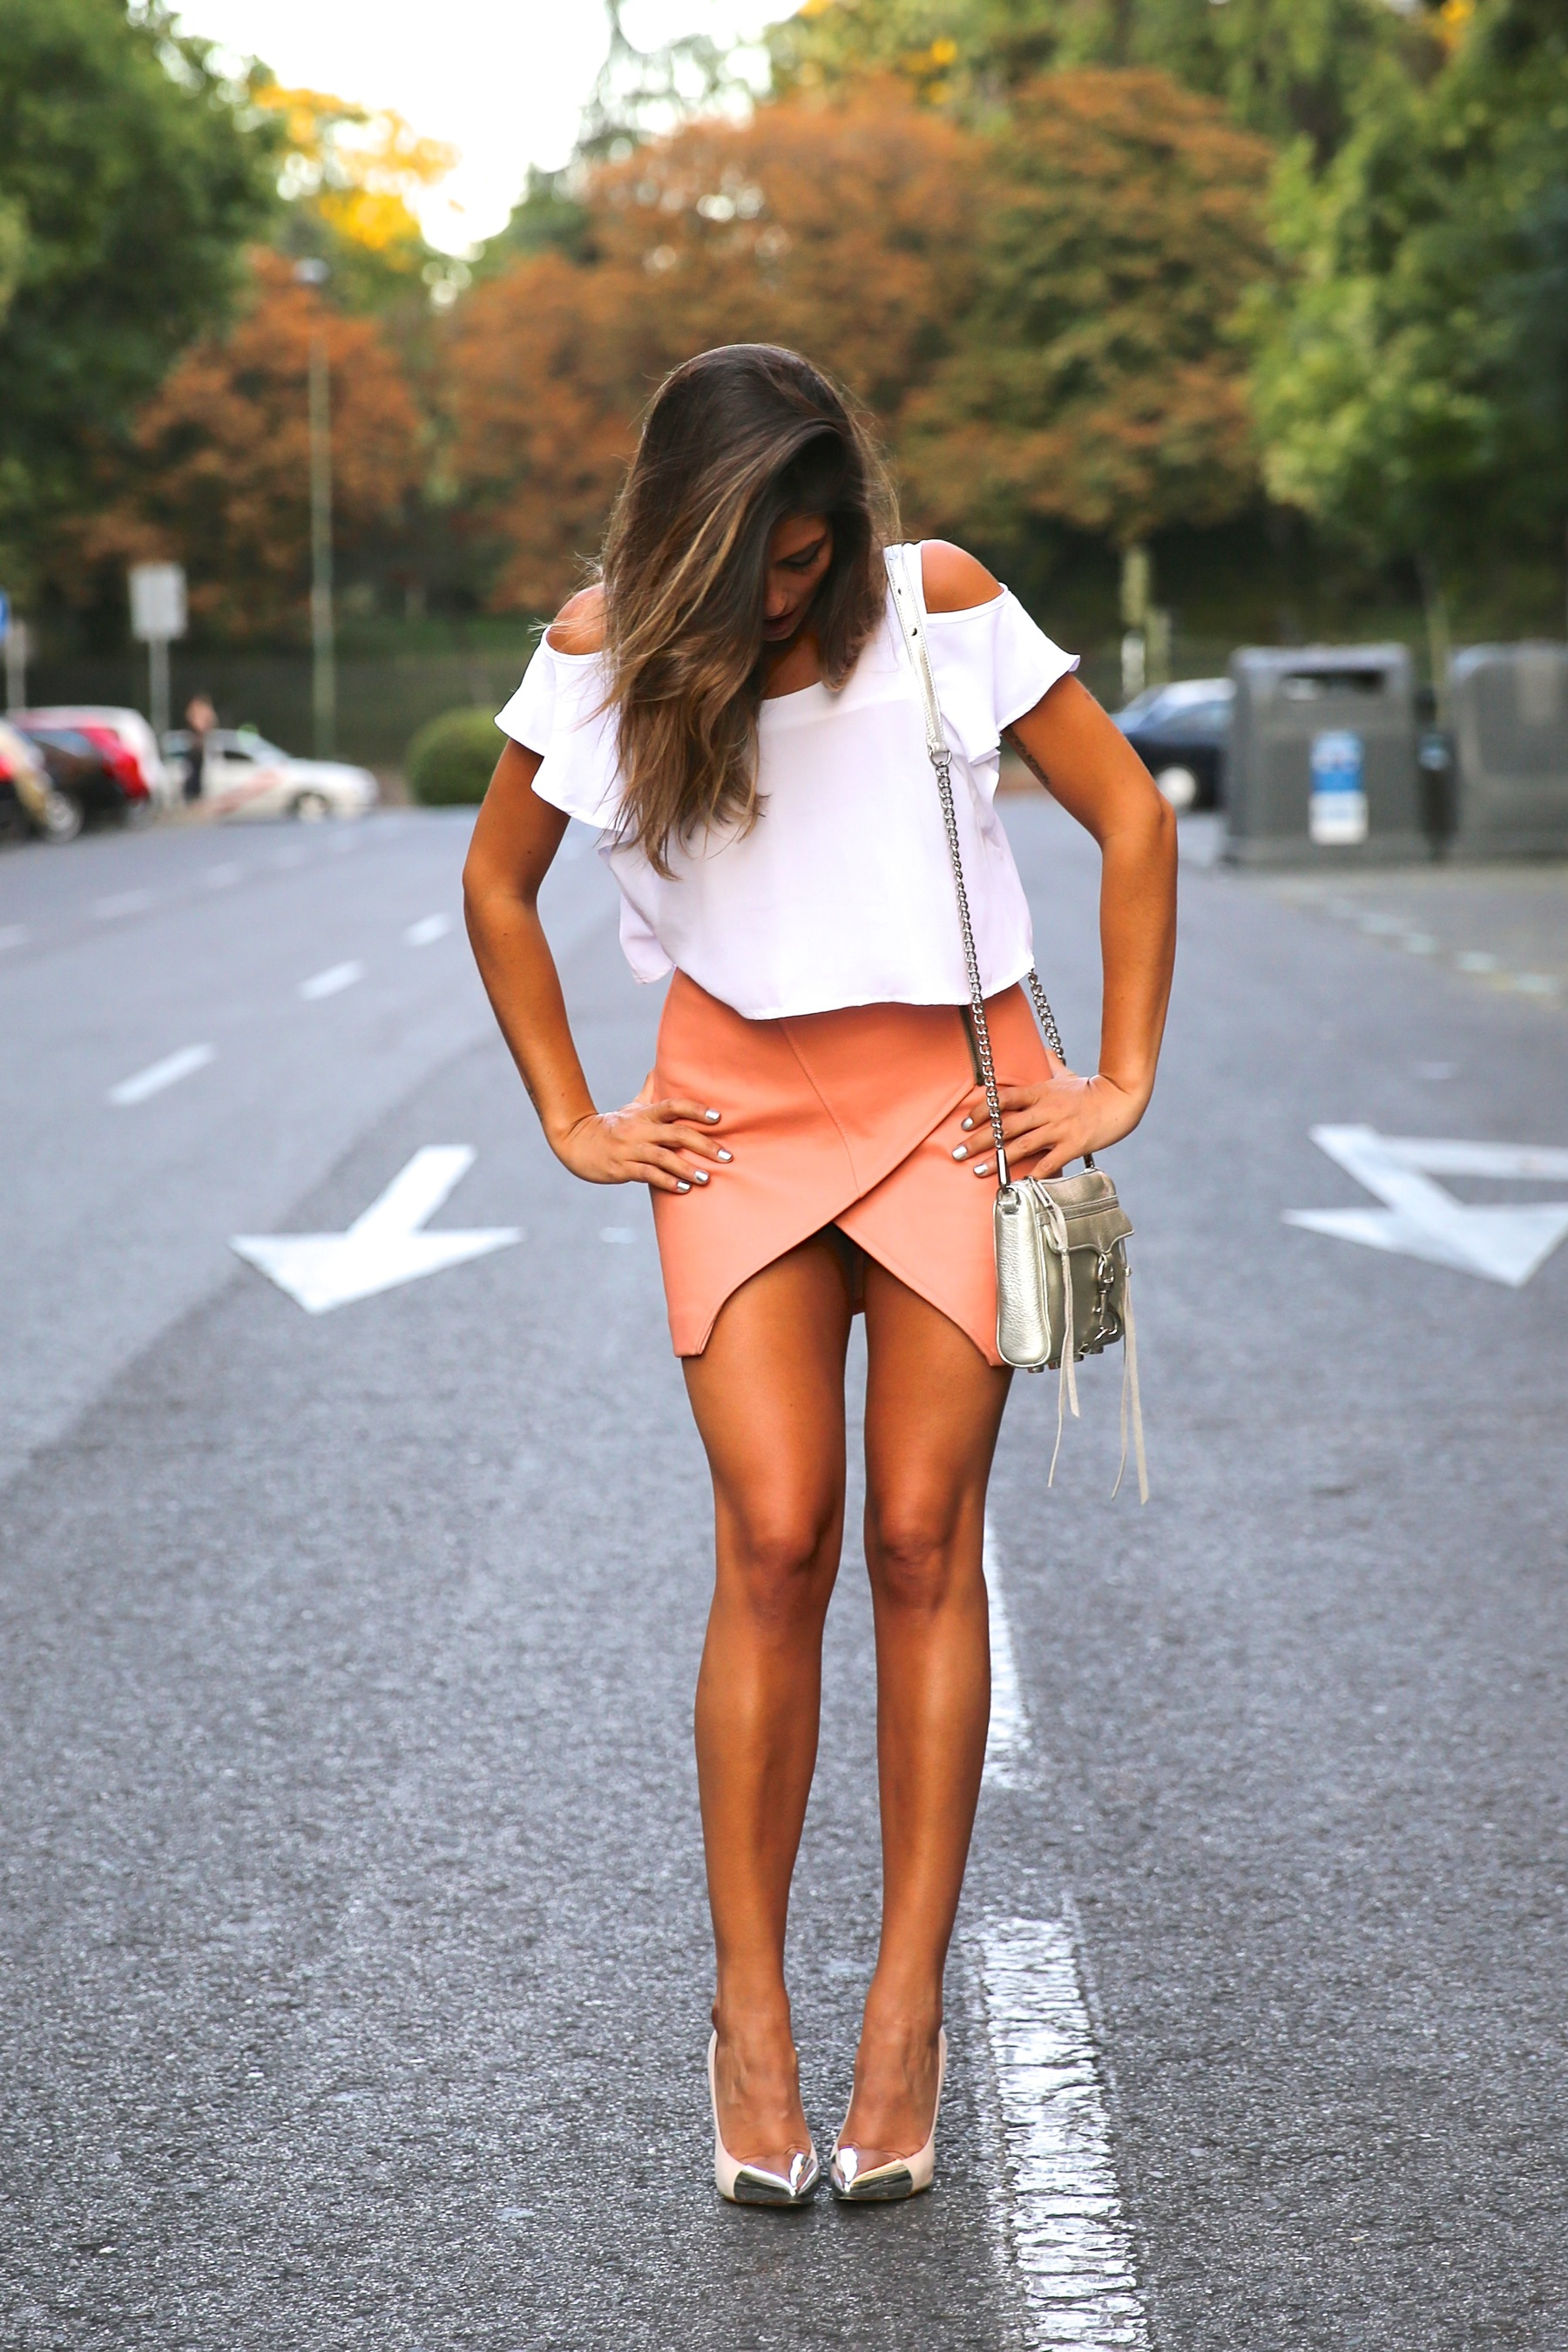 trendy_taste-look-outfit-street_style-ootd-blog-blogger-fashion_spain-moda_españa-madrid-silver_stilettos-punta_plata-estiletos-falda_coral-coral_skirt-top-6